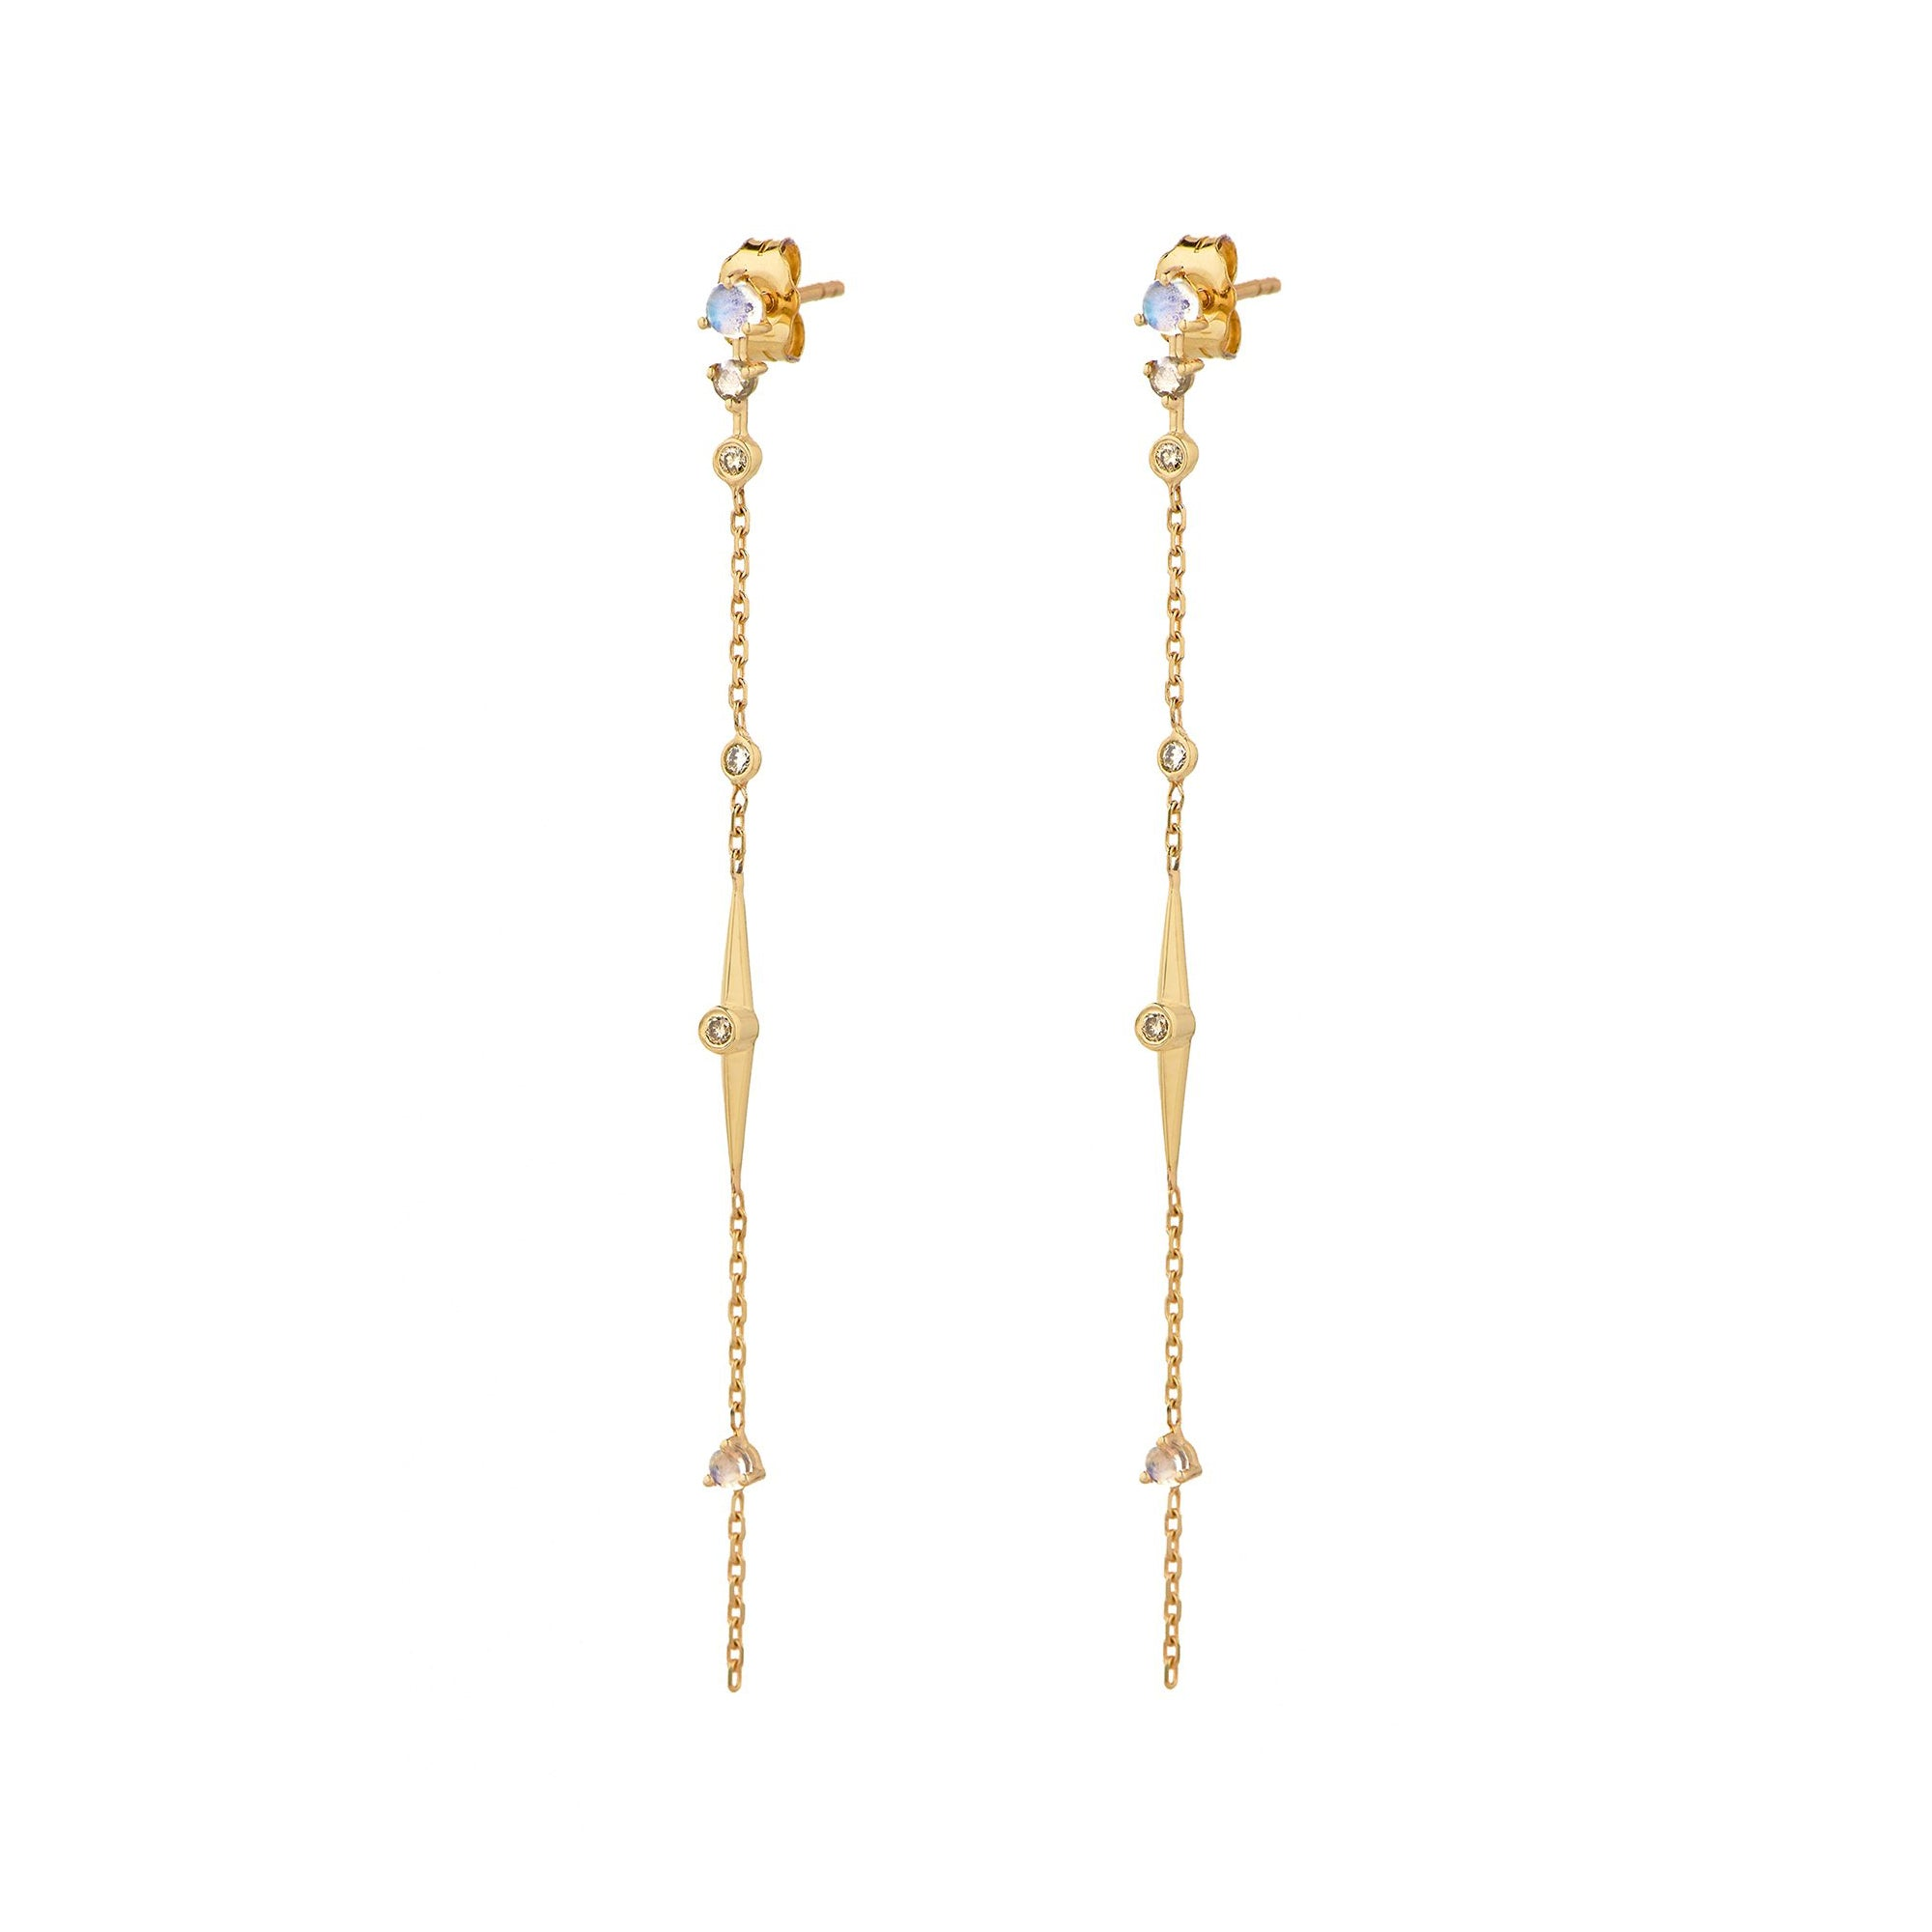 Moonstone & Diamonds Long Chain Earrings by Celine Daoust for Broken English Jewelry